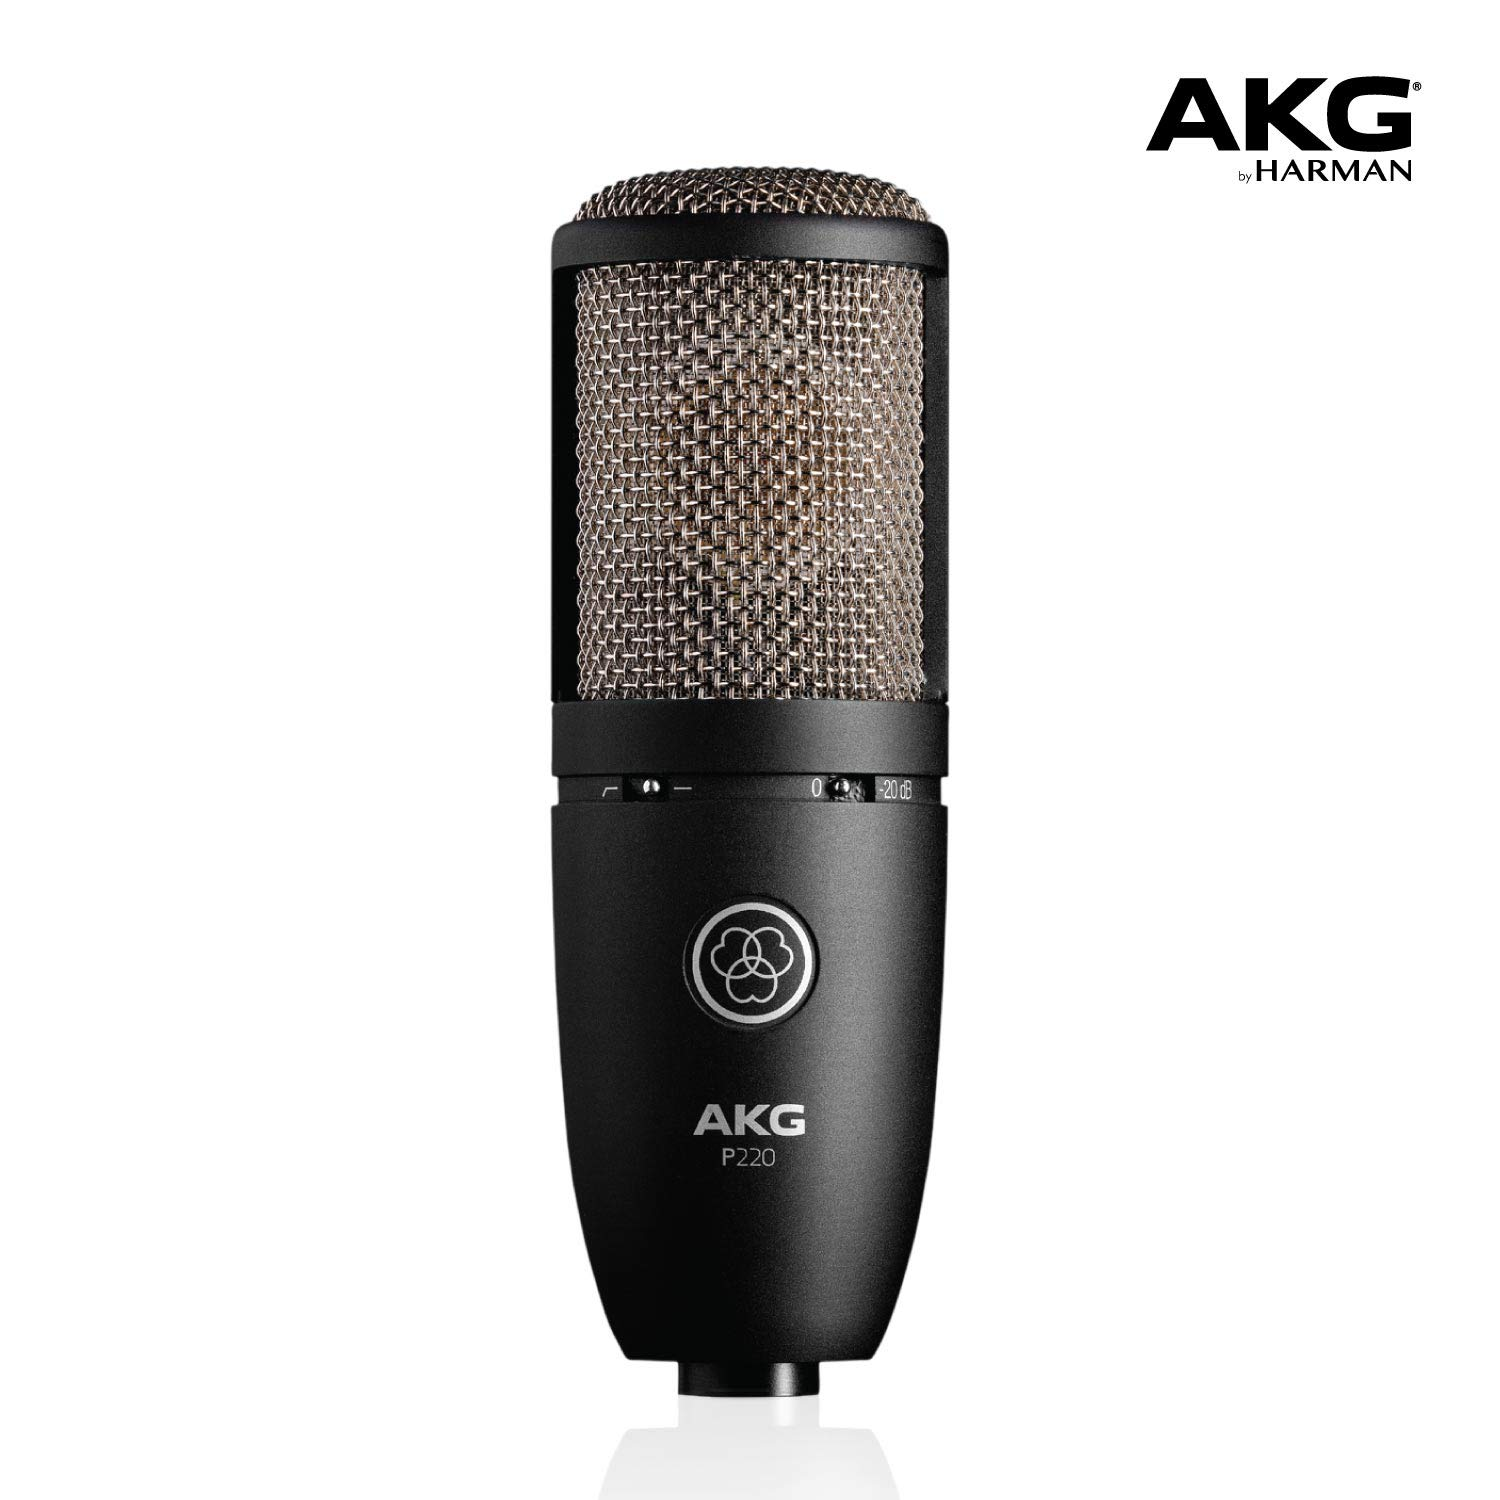 AKG P220 – High-performance large diaphragm true condenser microphone